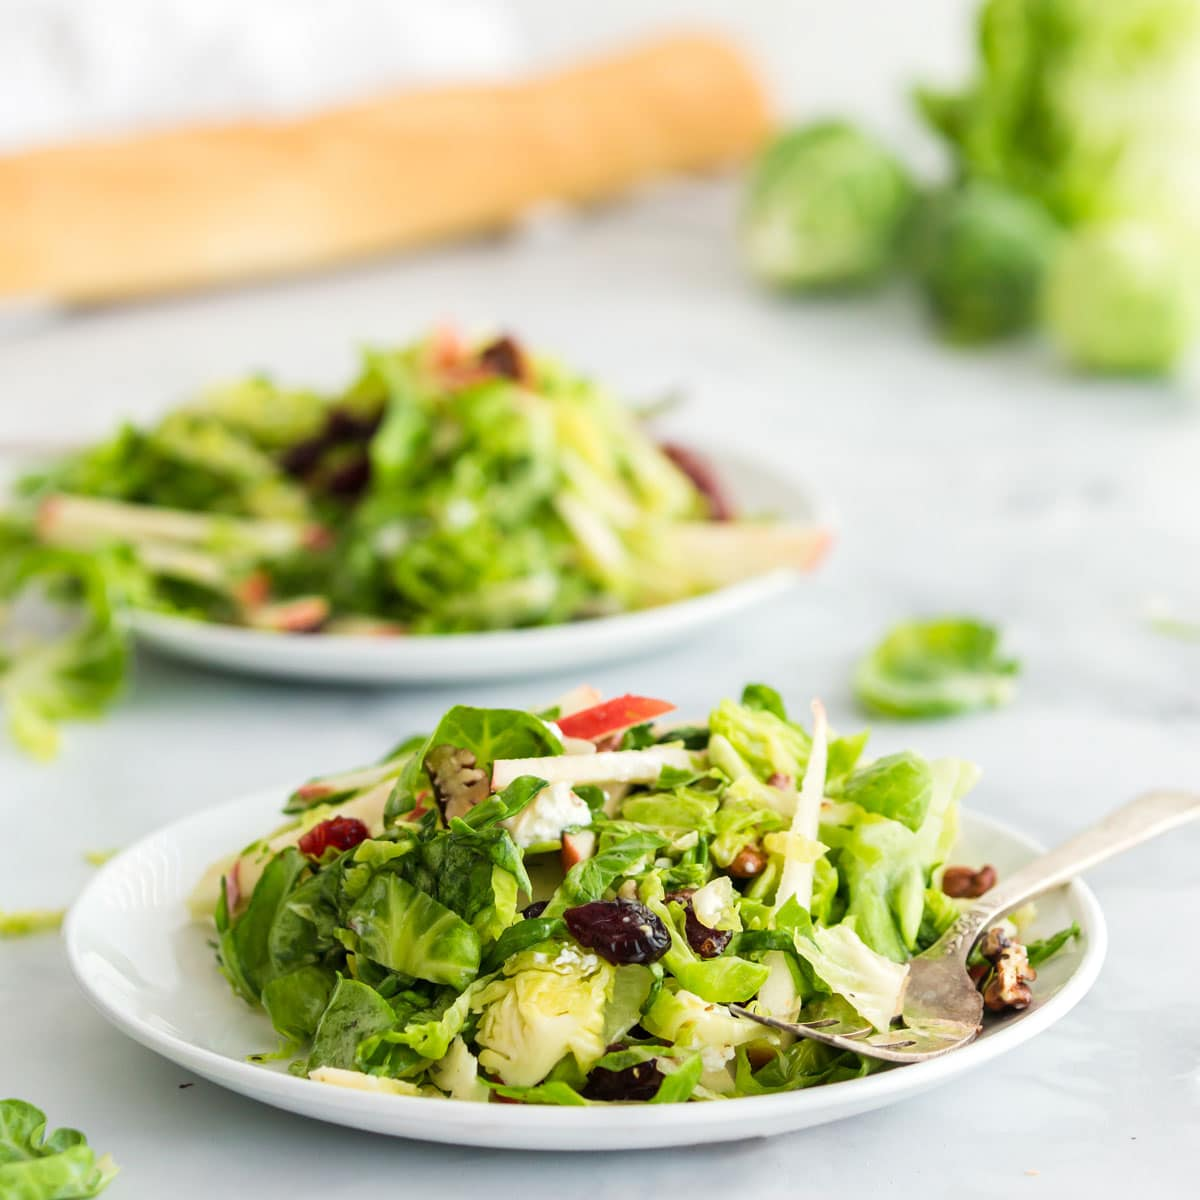 Two bowls of salad with Brussels sprouts